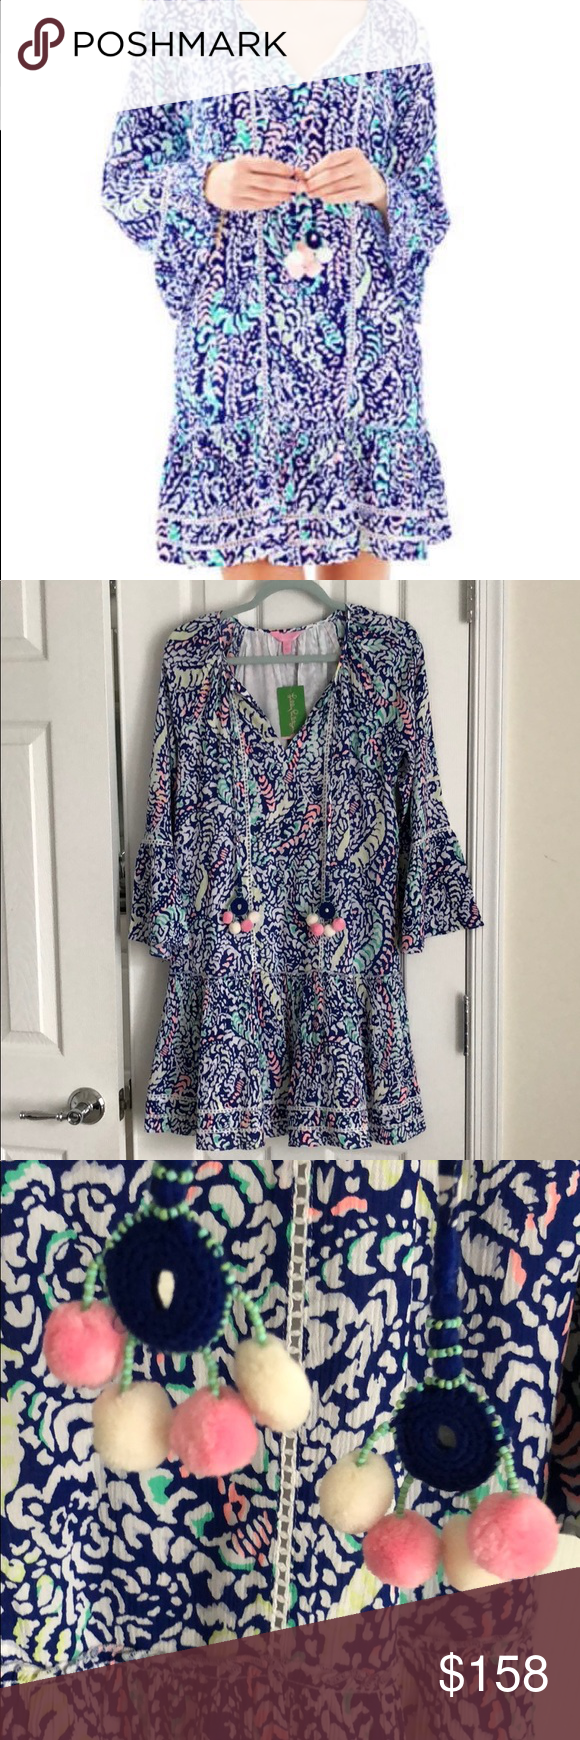 273225d985a NWT Lilly Pulitzer Percilla tunic dress Blue grotto move it or lose it - Lilly  Pulitzer tunic dress that is incredibly comfortable and perfect for spring  ...